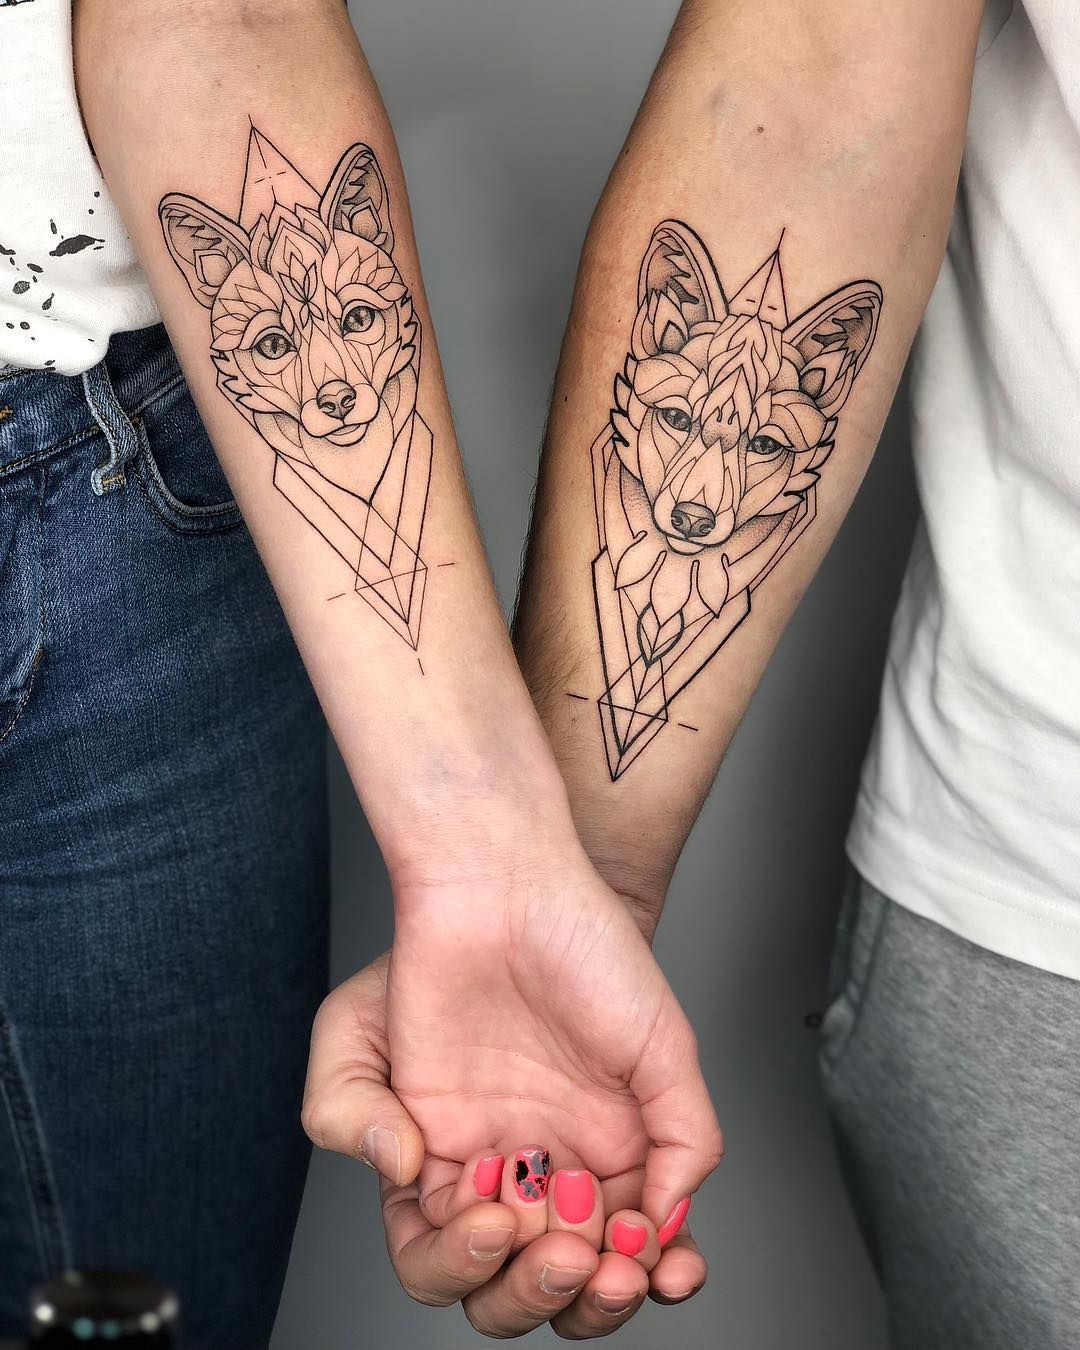 Tattoo Irainkers Linework Dotwork Geometry Animaltattoo Fox Kak Otnosites K Parnym Tatu Ya Schitayu Chto Eto Otlichnyj Sposob Matching Tattoos Cute Couple Tattoos Pair Tattoos